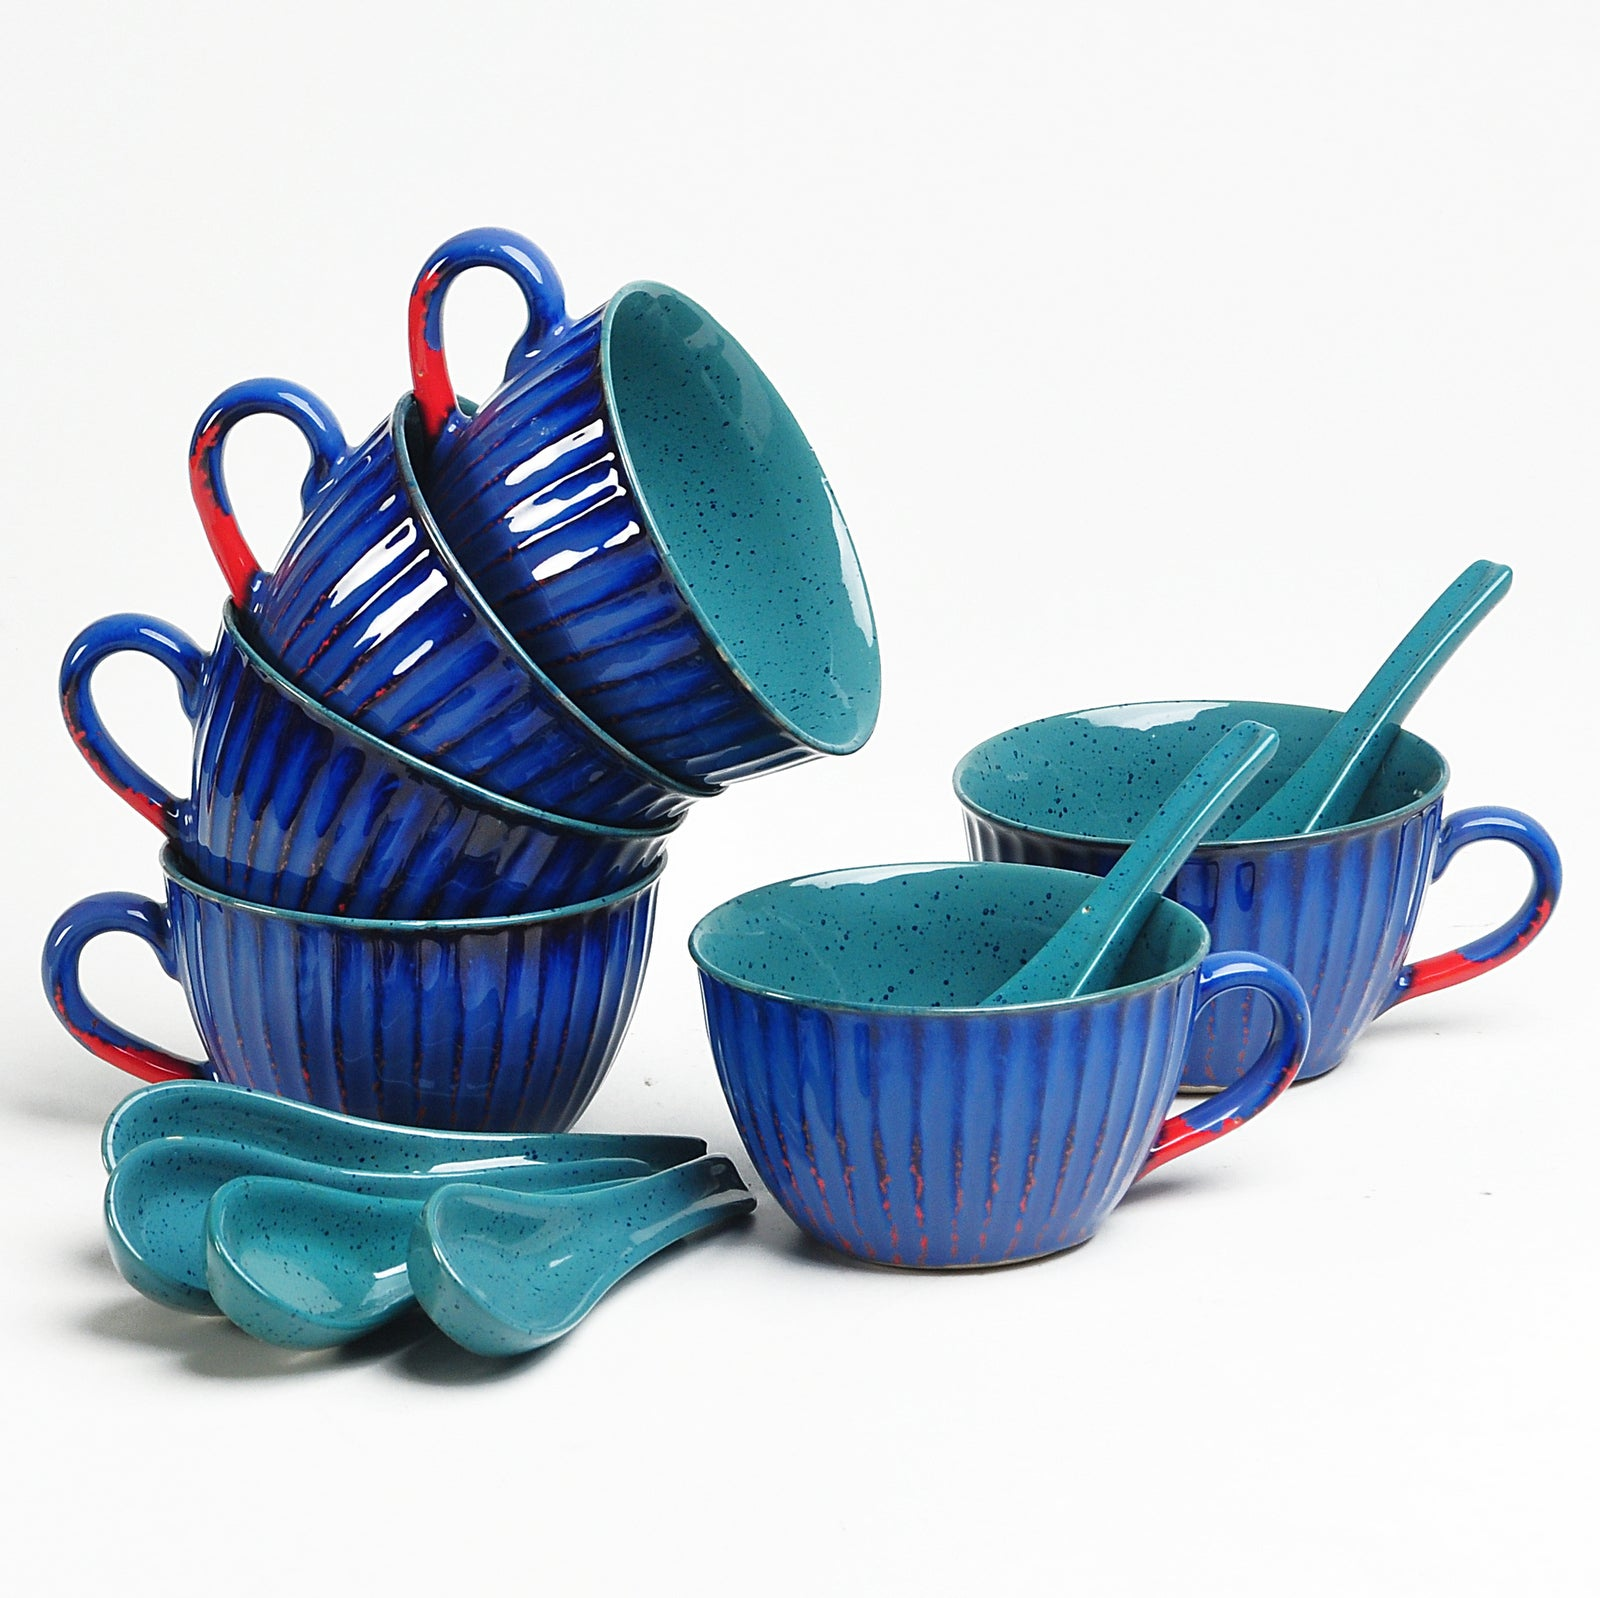 Blue and Green Viiva Soup Bowls - Set of 6